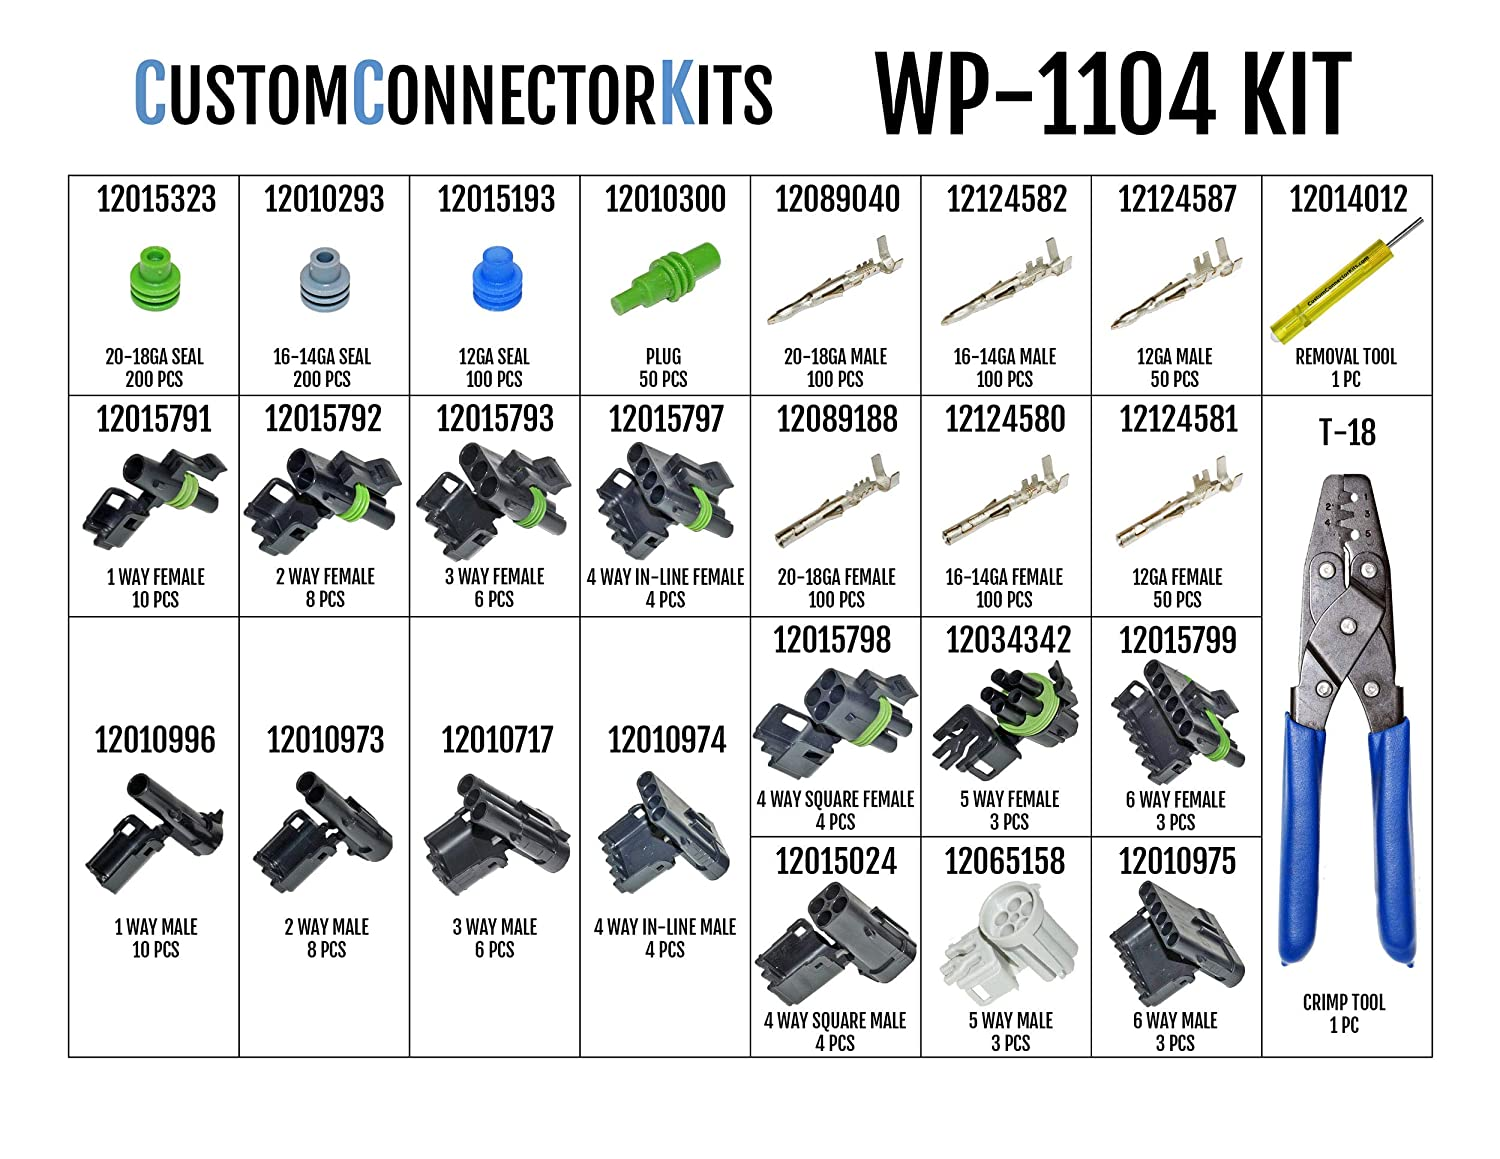 Delphi Weather Pack Connector Kit Wp 1104 With T 18 Ford Wiring Harness Kits Male Plugs Sealed Weatherproof Automotive Electrical Connectors 20 12 Gauge Piece Crimp